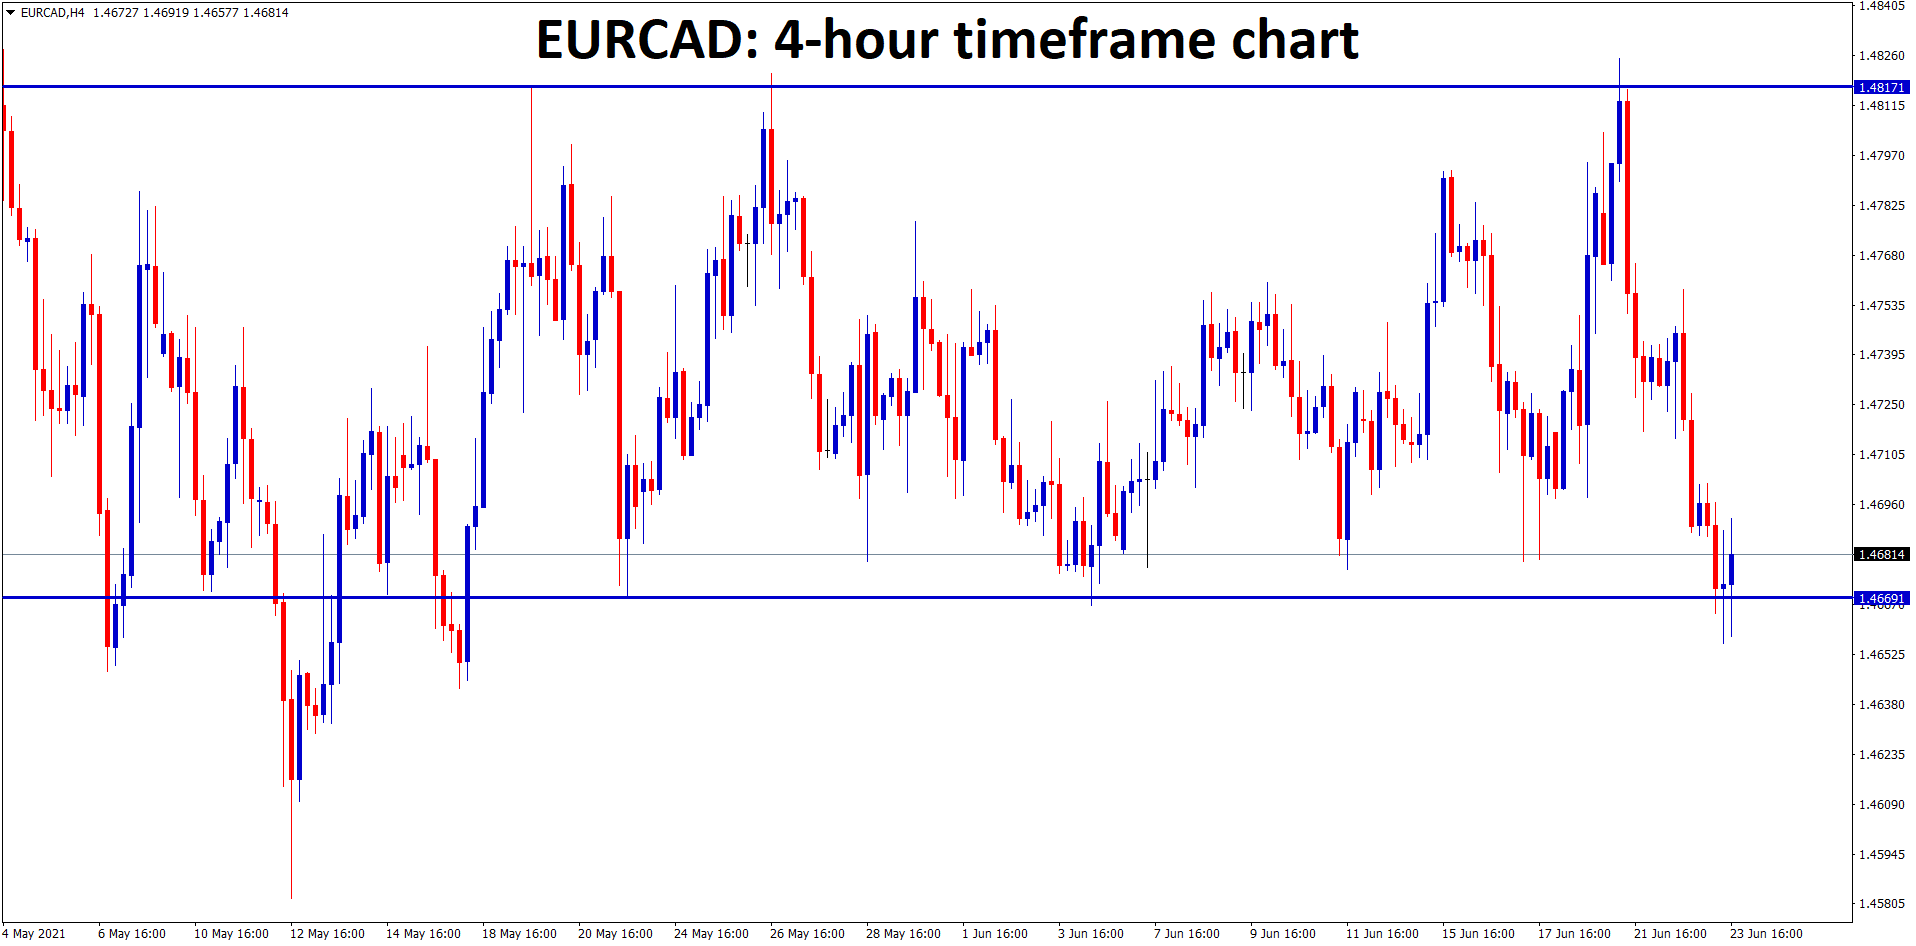 EURCAD is moving between the support and resistance levels